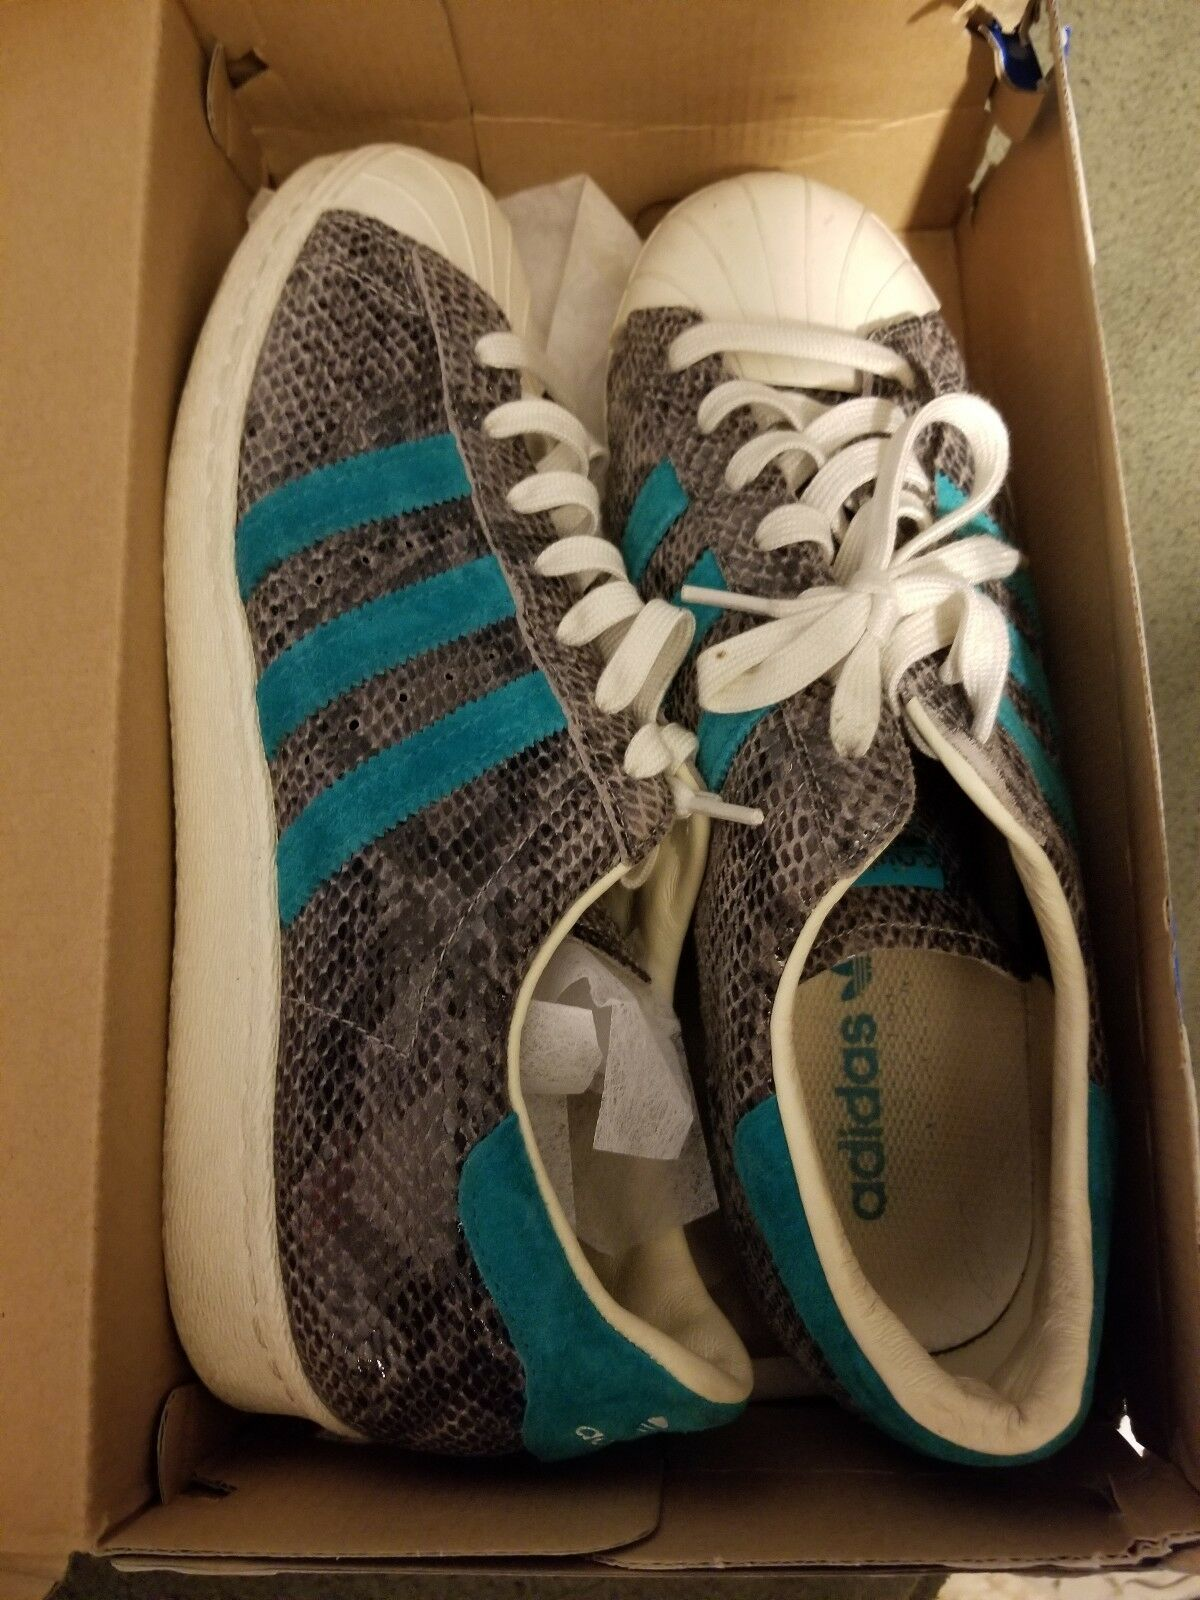 Adidas Superstar 80s Snake Turquoise